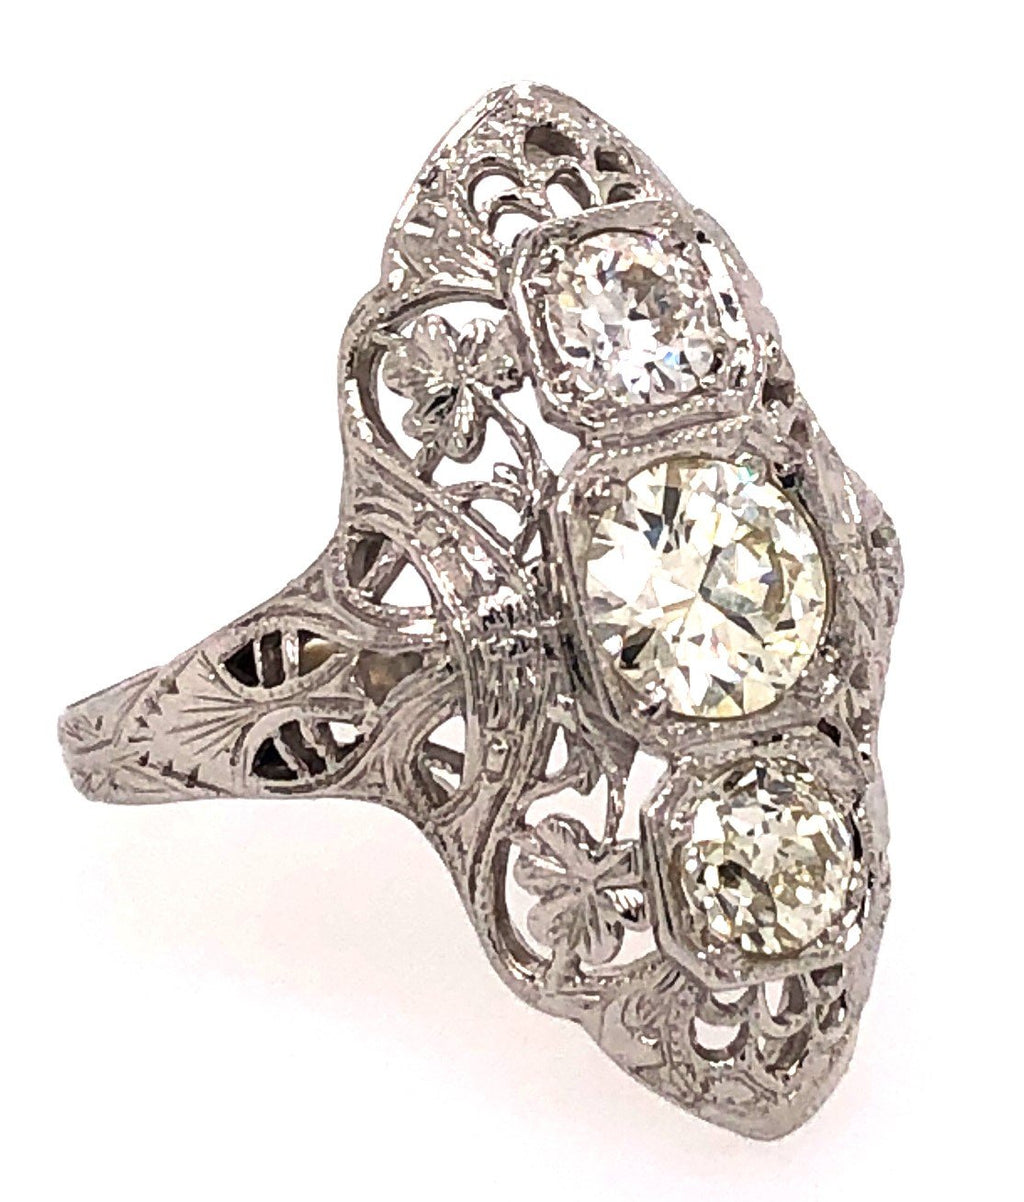 Circa 1920's Three-Stone Diamond Ring